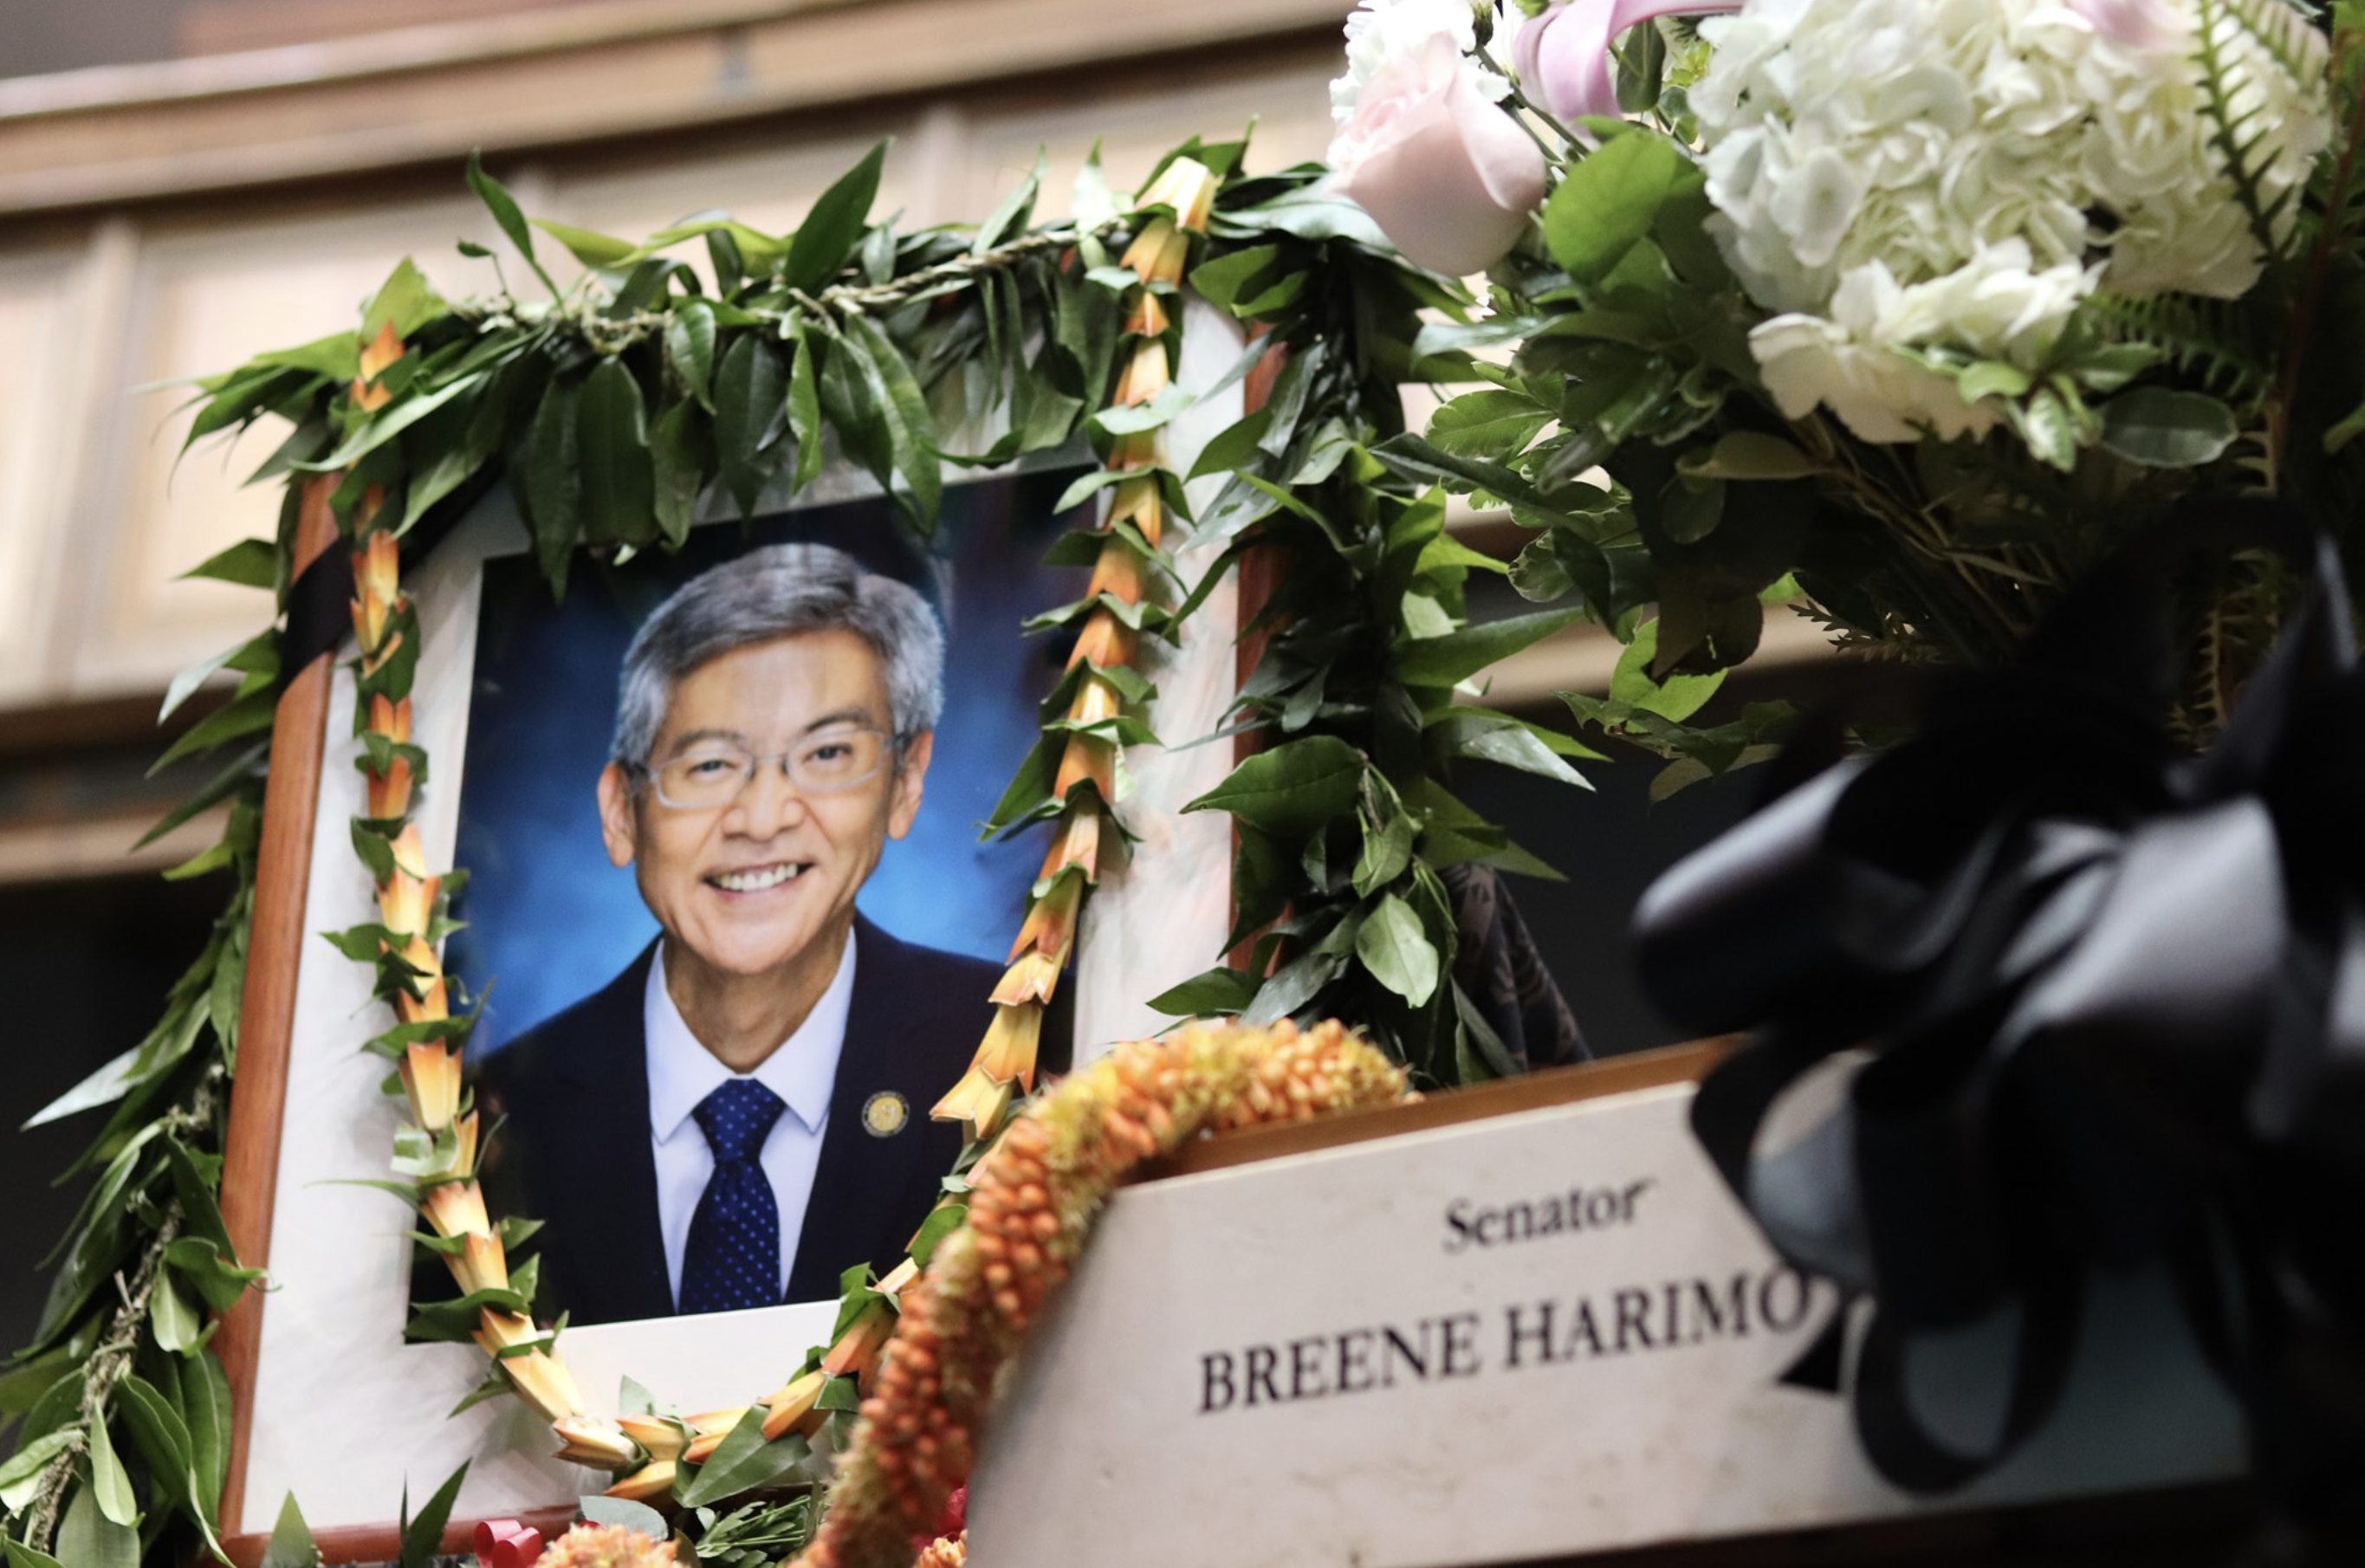 Colleagues Honors Late Sen. Breene Harimoto Today with Memorial in Senate Chamber